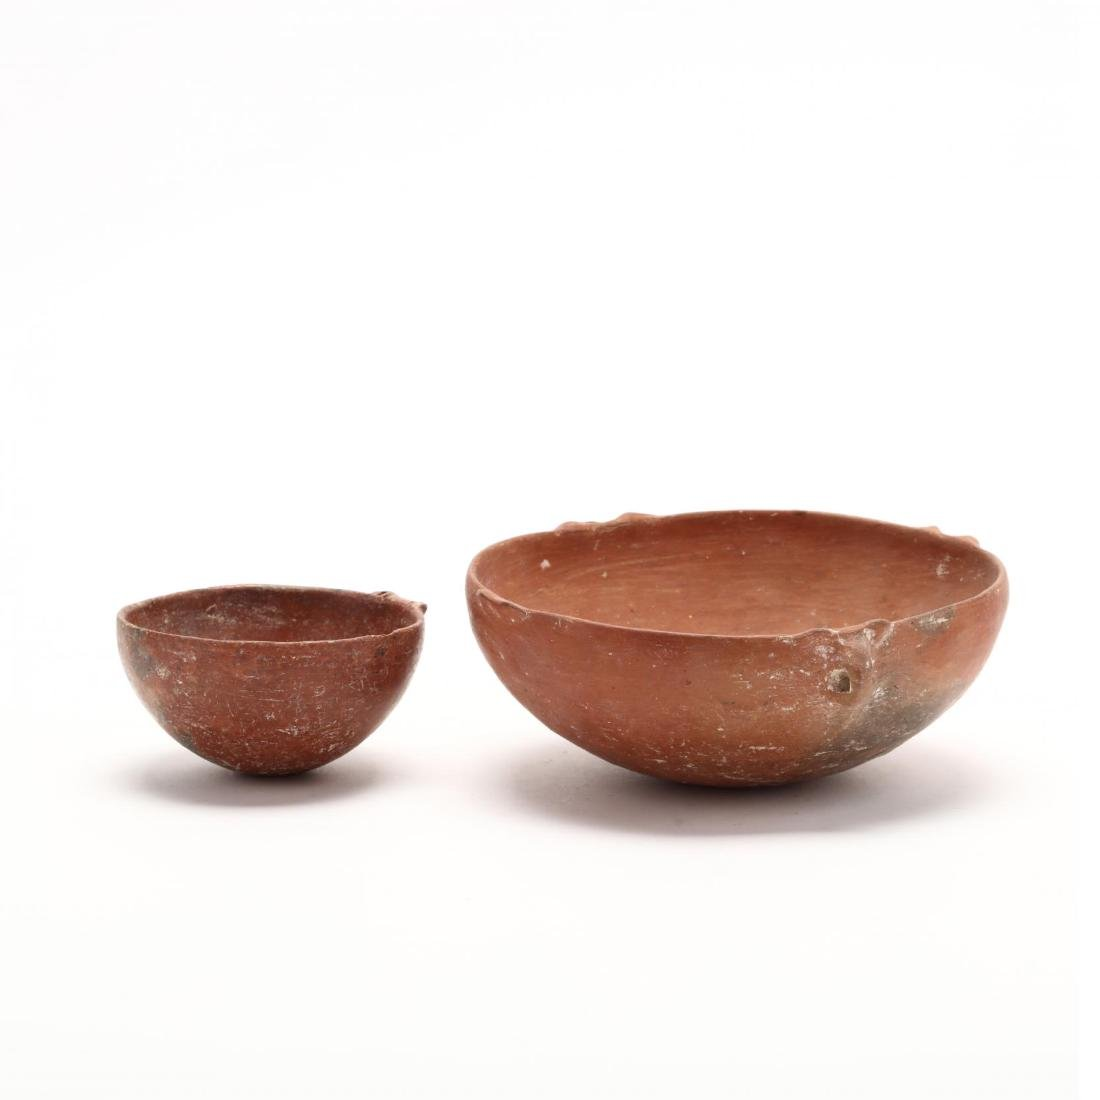 Two Cypriot Early Bronze Age Polished Red Ware Bowls - 3